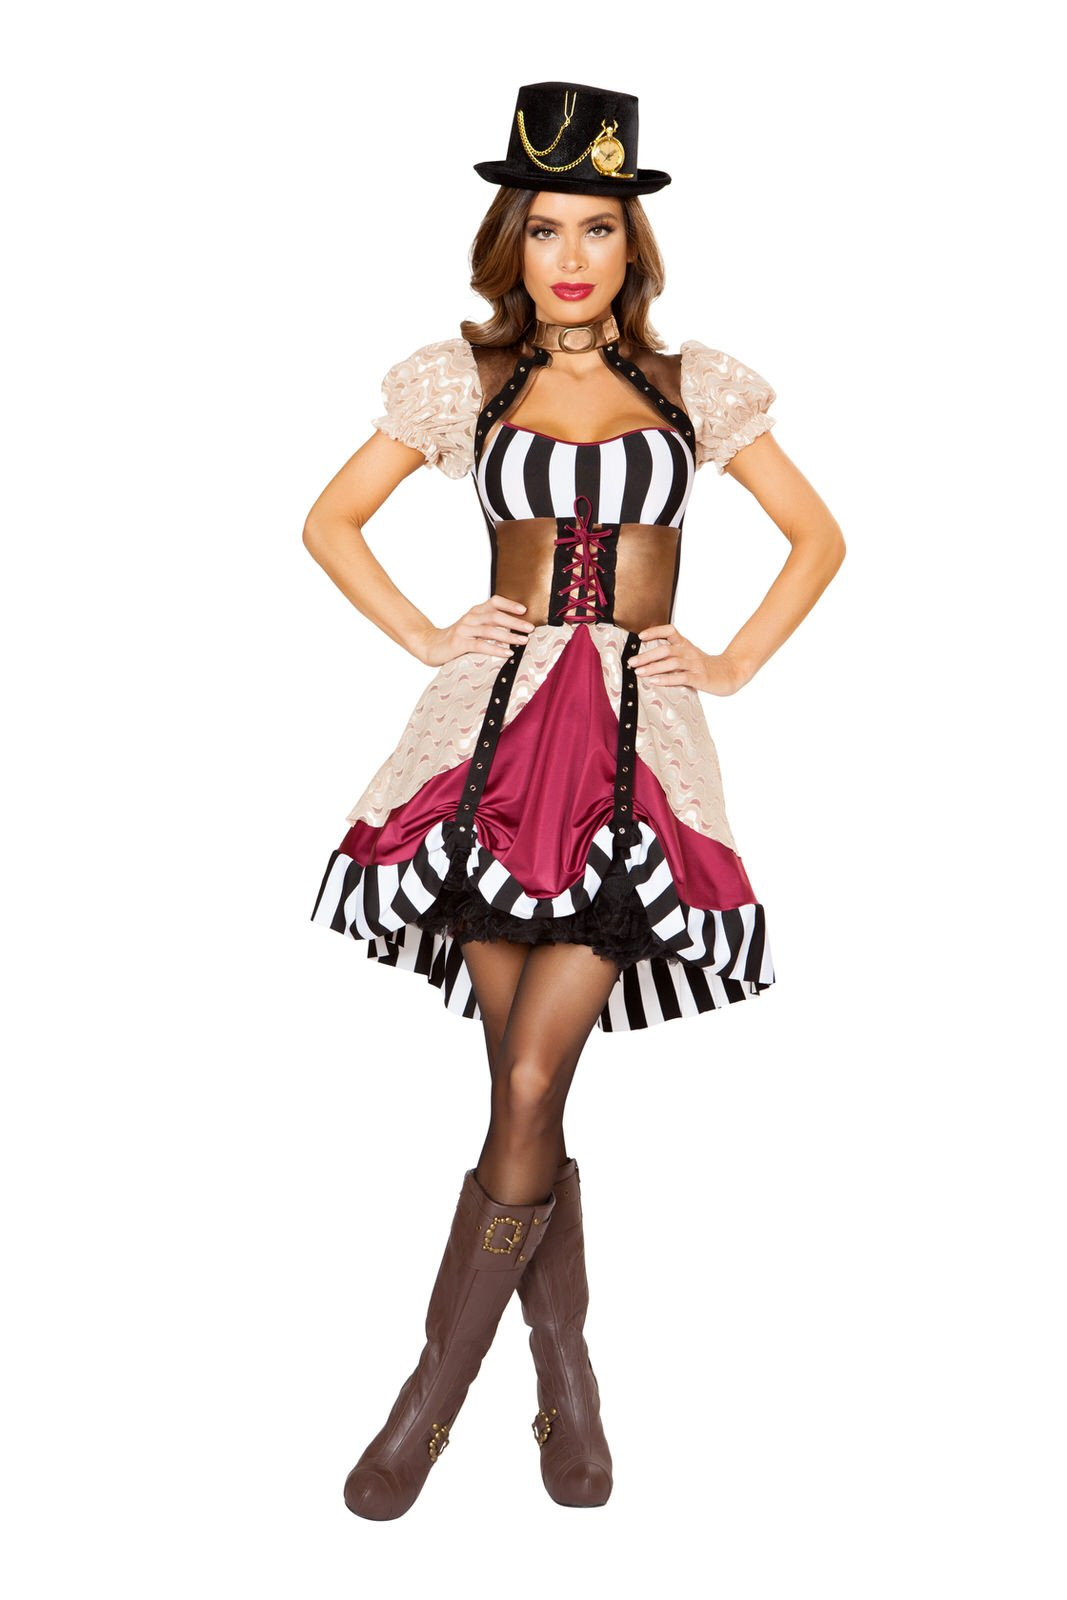 10105 - 1pc Sassy Steampunk